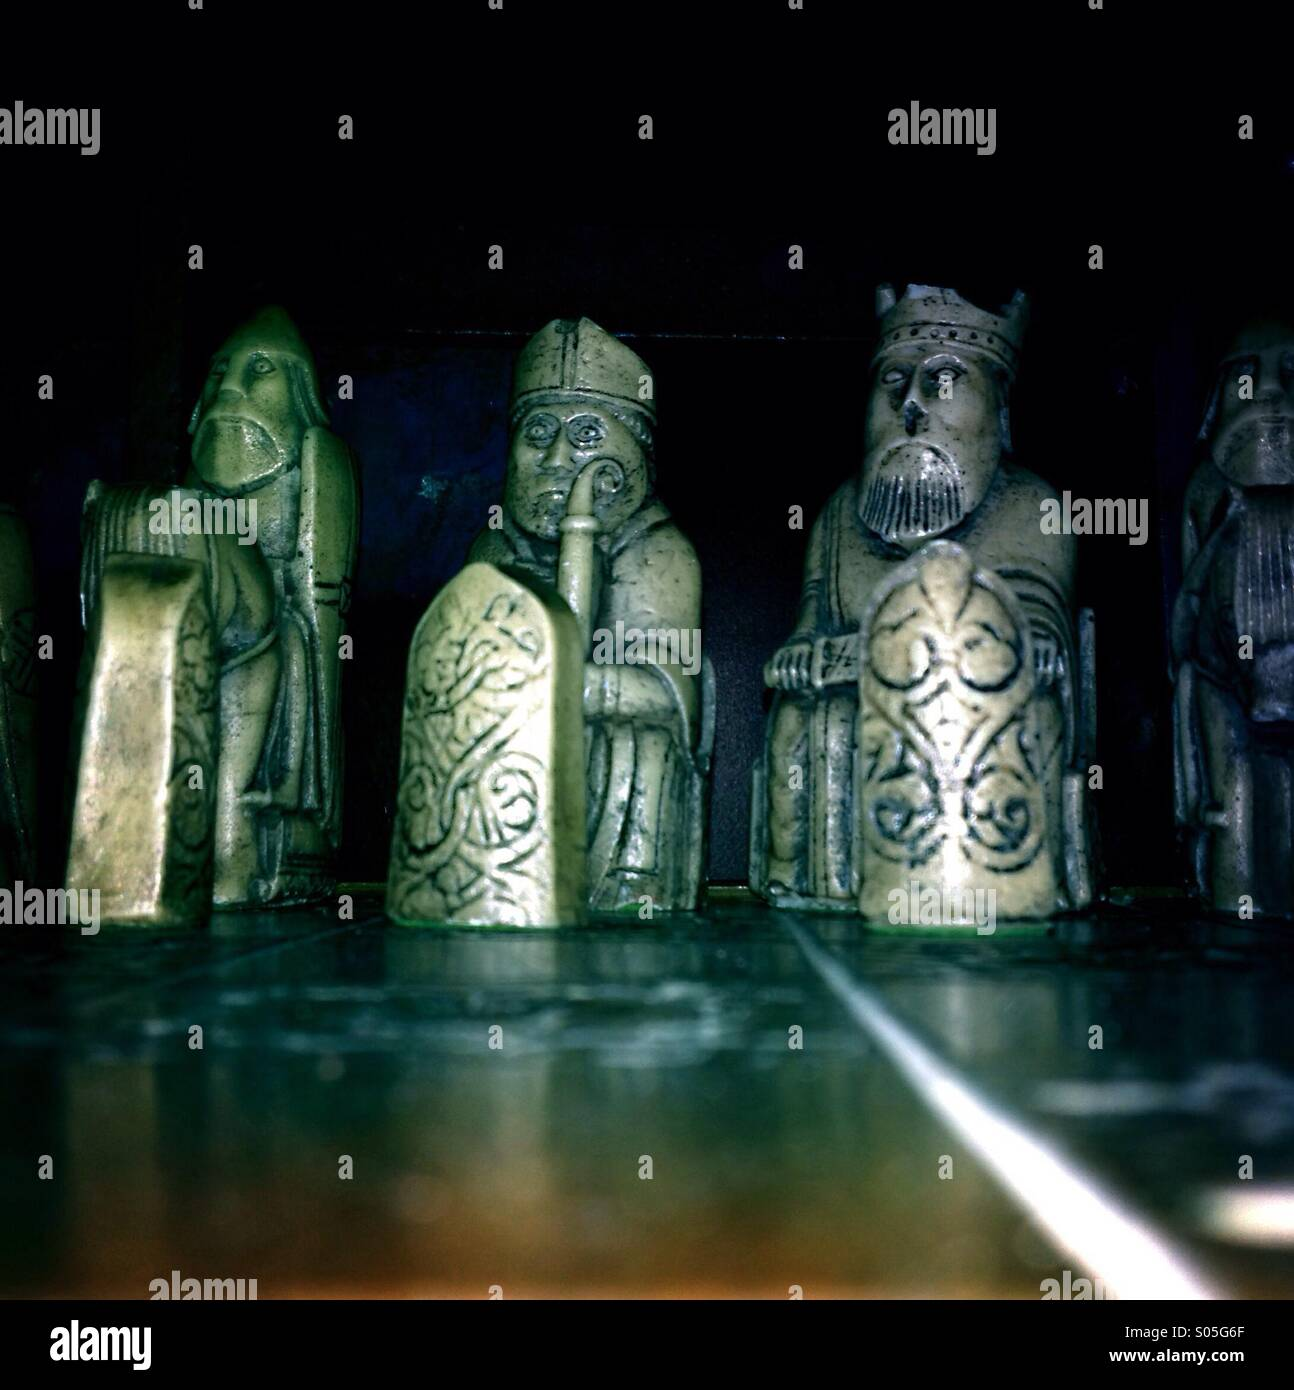 Warrior chess pieces, looking stern angry scowling aggressive. - Stock Image